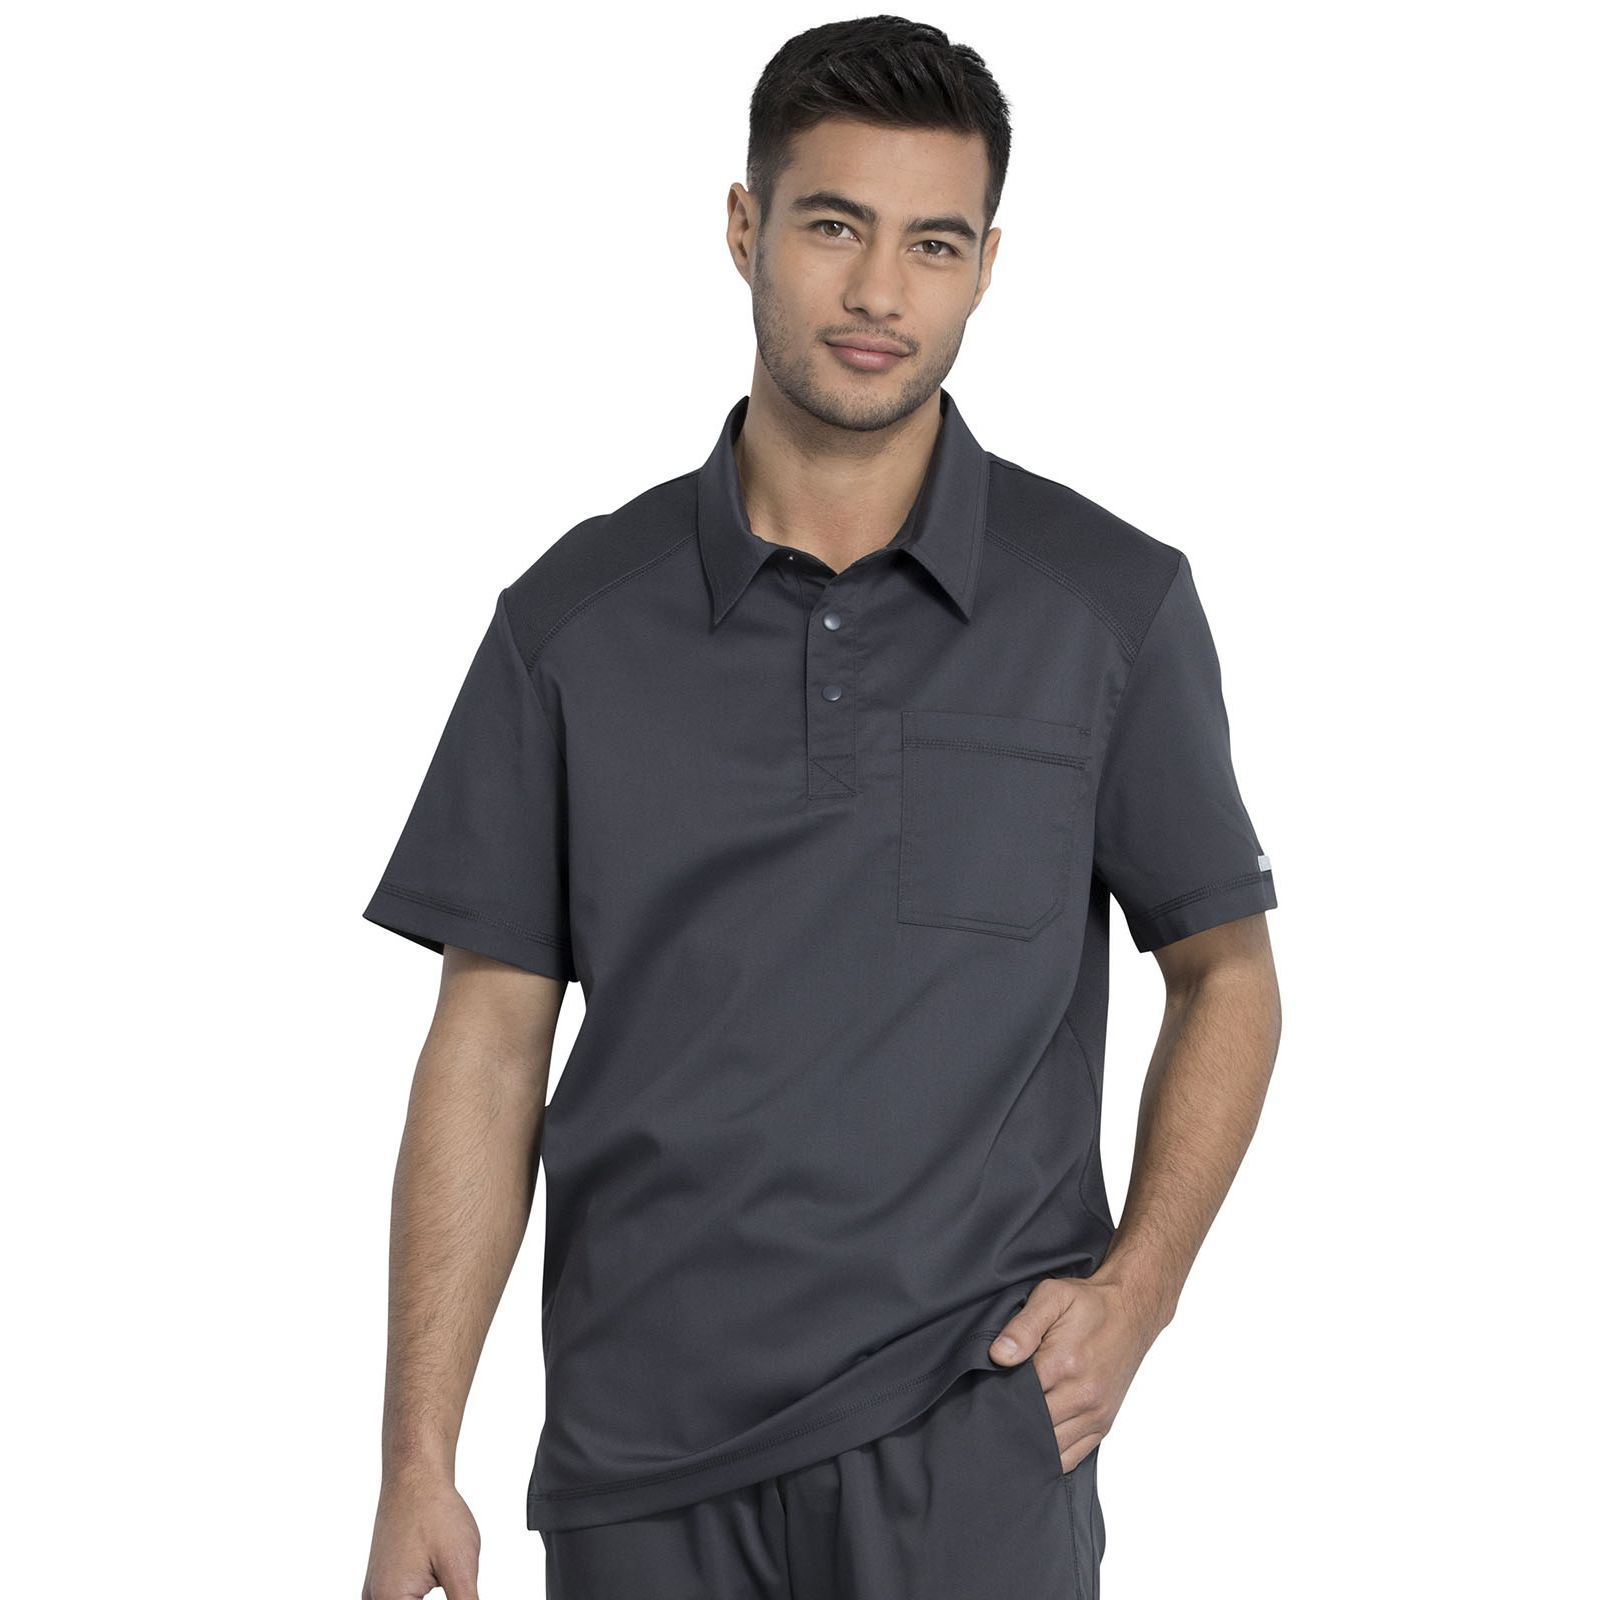 """Blouse médicale Homme Col polo, Cherokee, Collection """"Revolution"""" (WW615) gris anthracite face"""